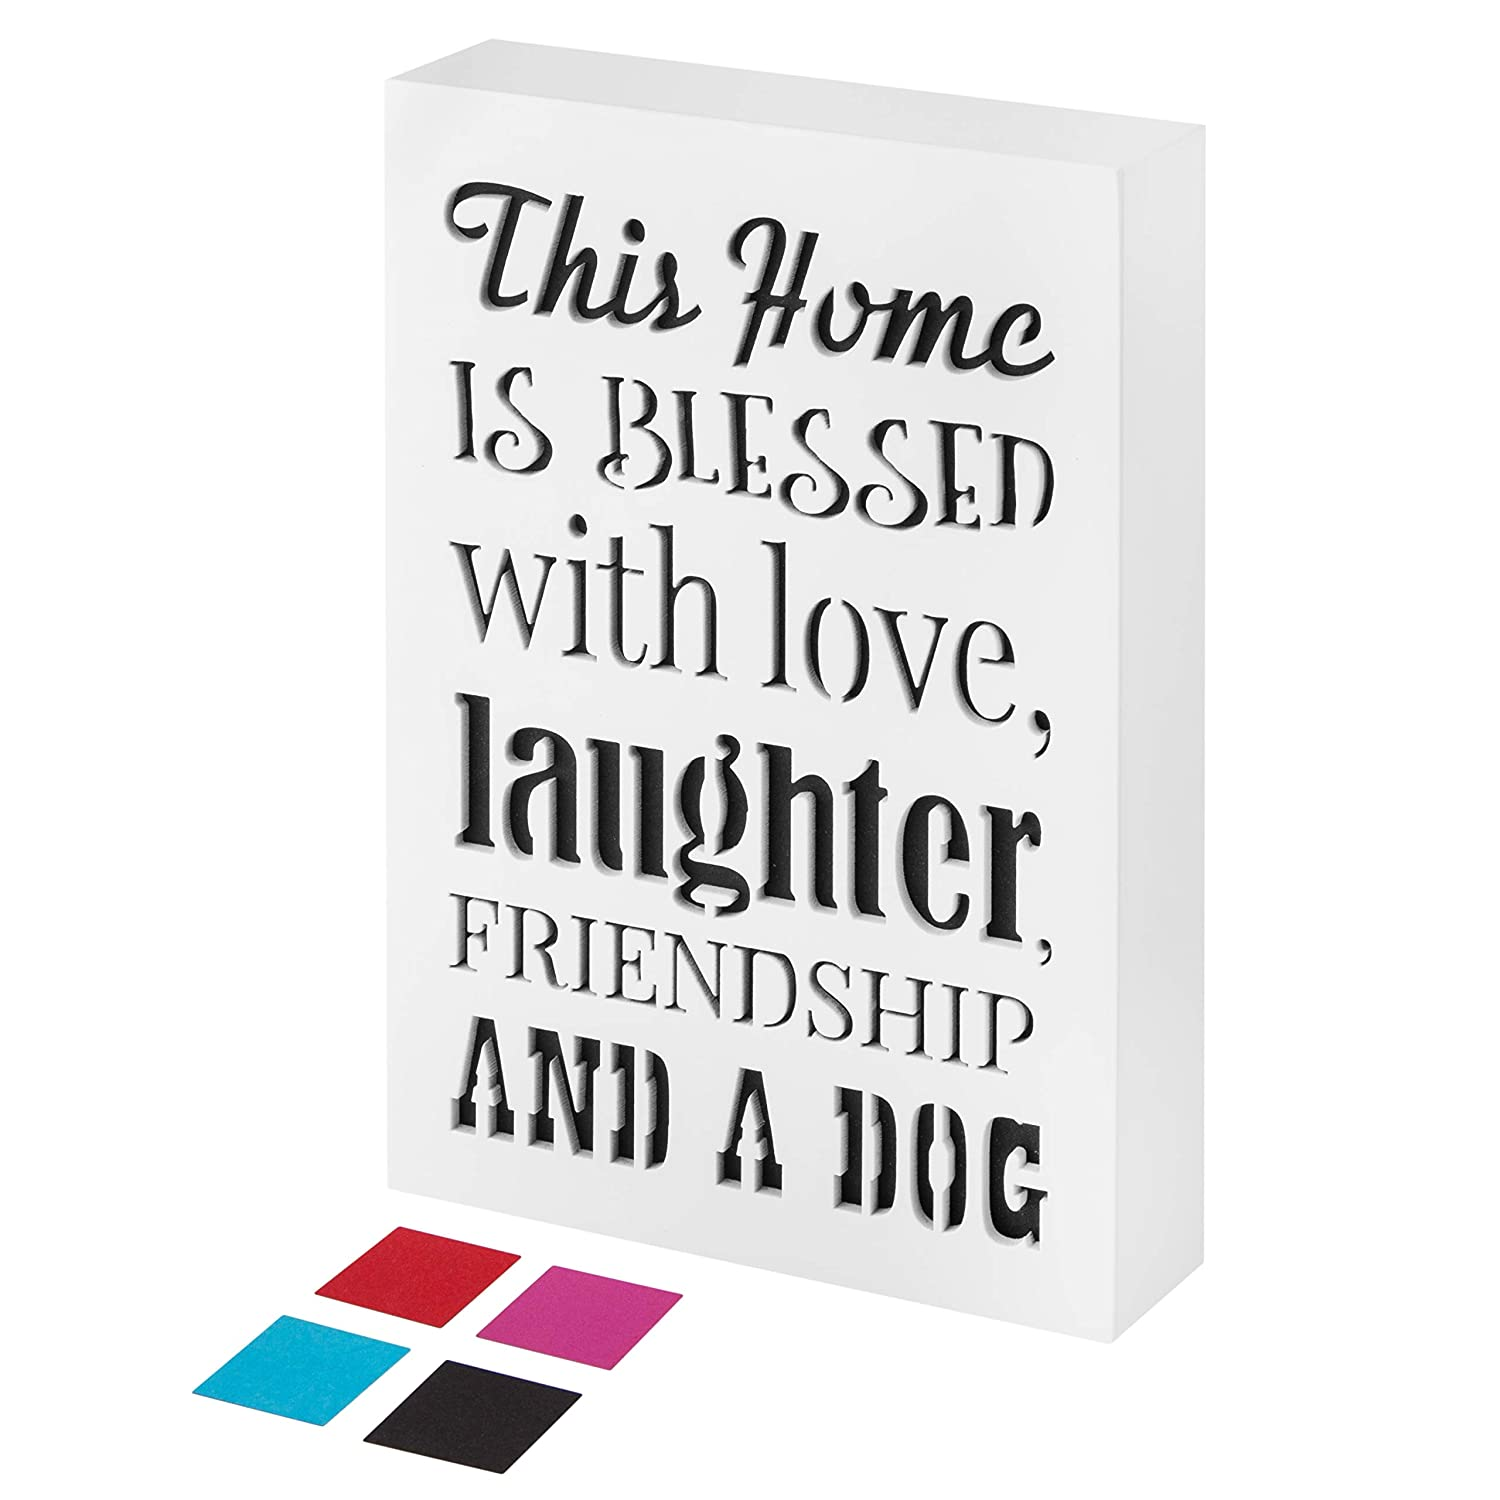 KAUZA Signs for Home Decor Dog Mom Gifts Accessories Bless Hhis Home Sign